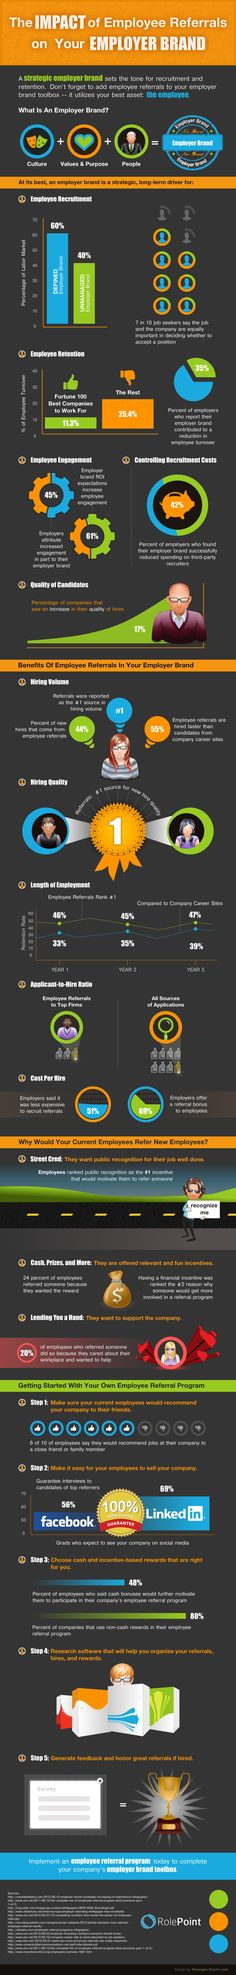 How Employee Referrals Can Impact Your Employer Brand. #Jobs #Infographic